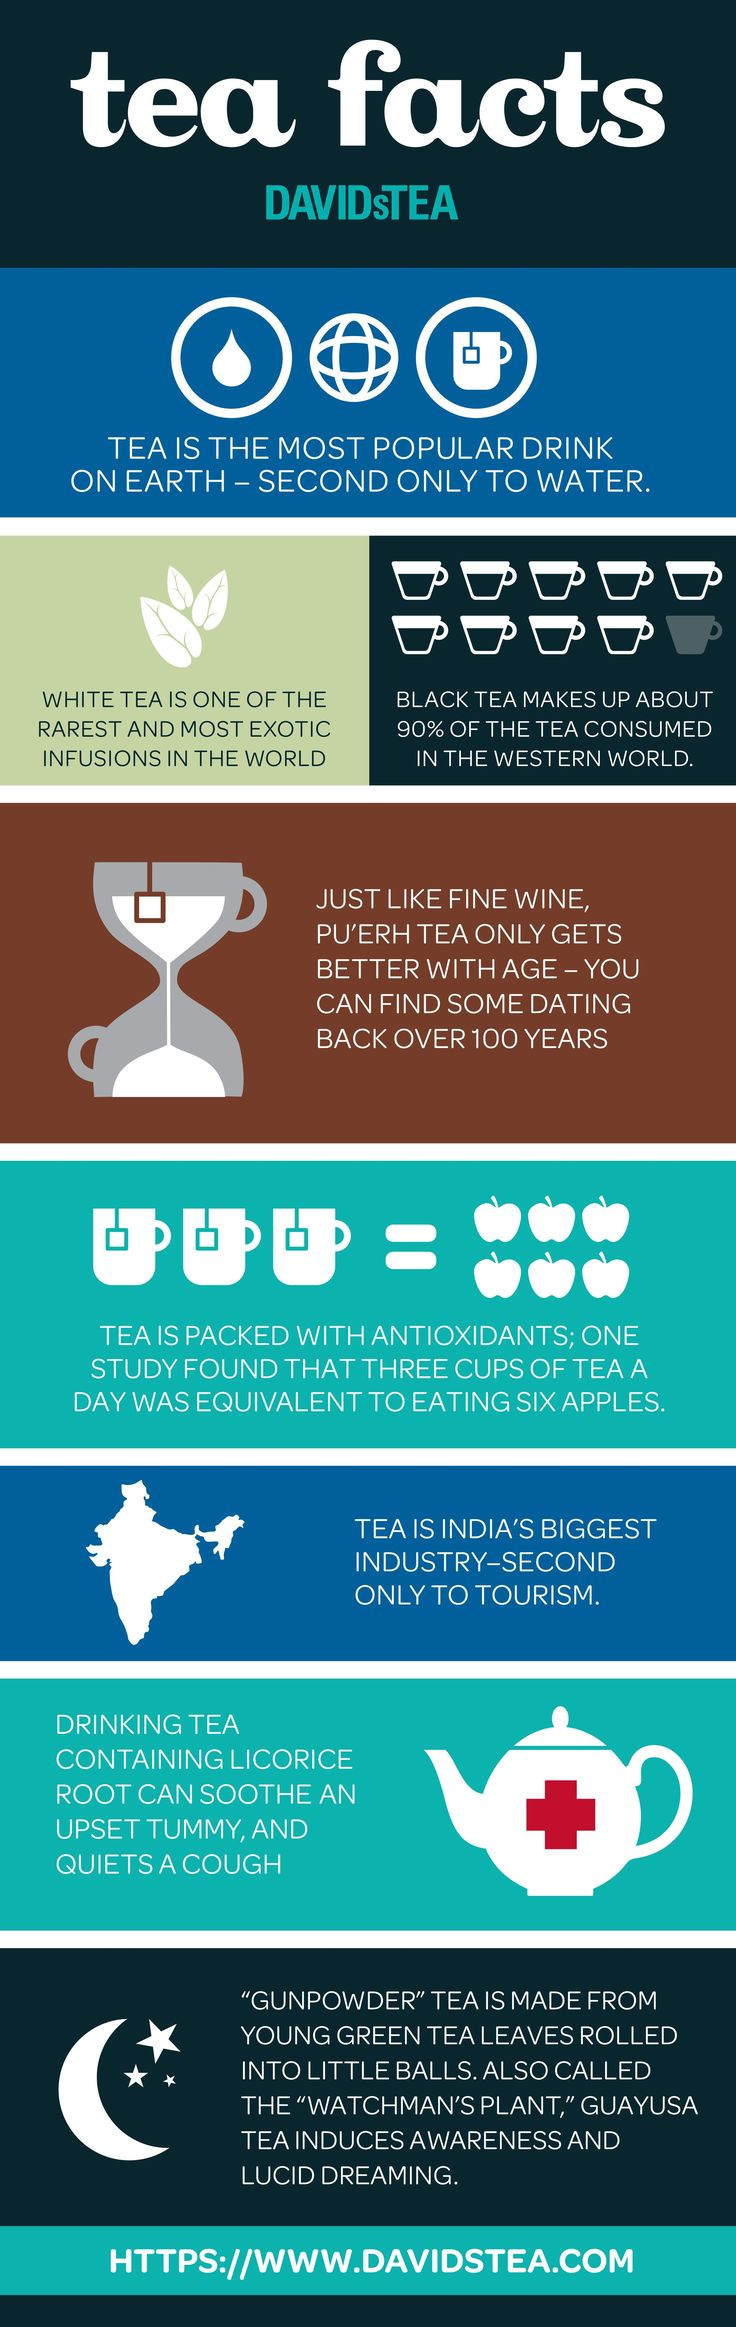 Who knew?! Some amazing #tea facts from our friends at @Nasdaq